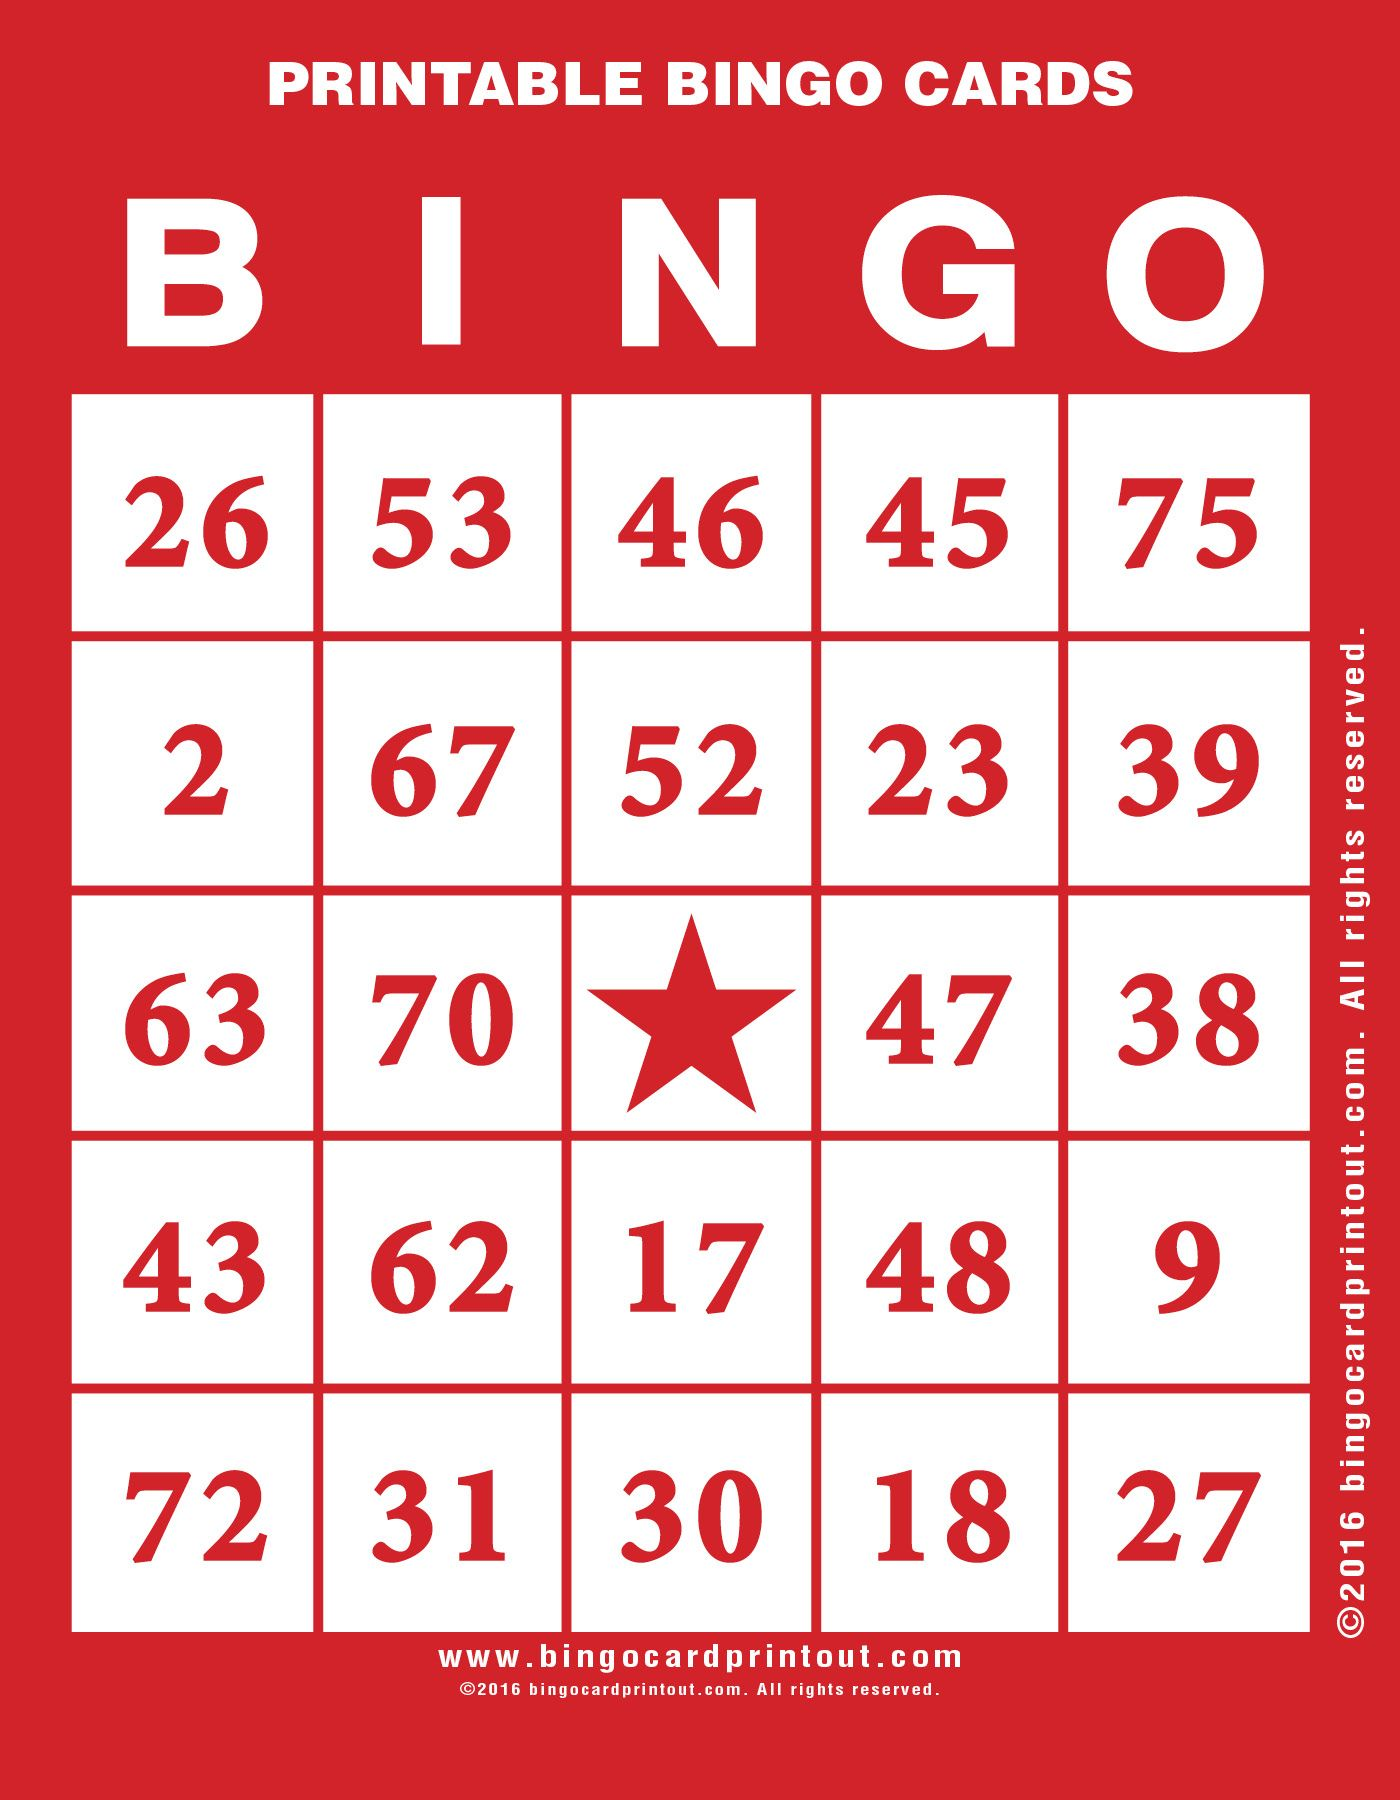 Offering Free Printable Bingo Cards In A Large Variety Of Styles Colors And Themes For Bingo Gr Free Printable Bingo Cards Bingo Printable Bingo Card Template